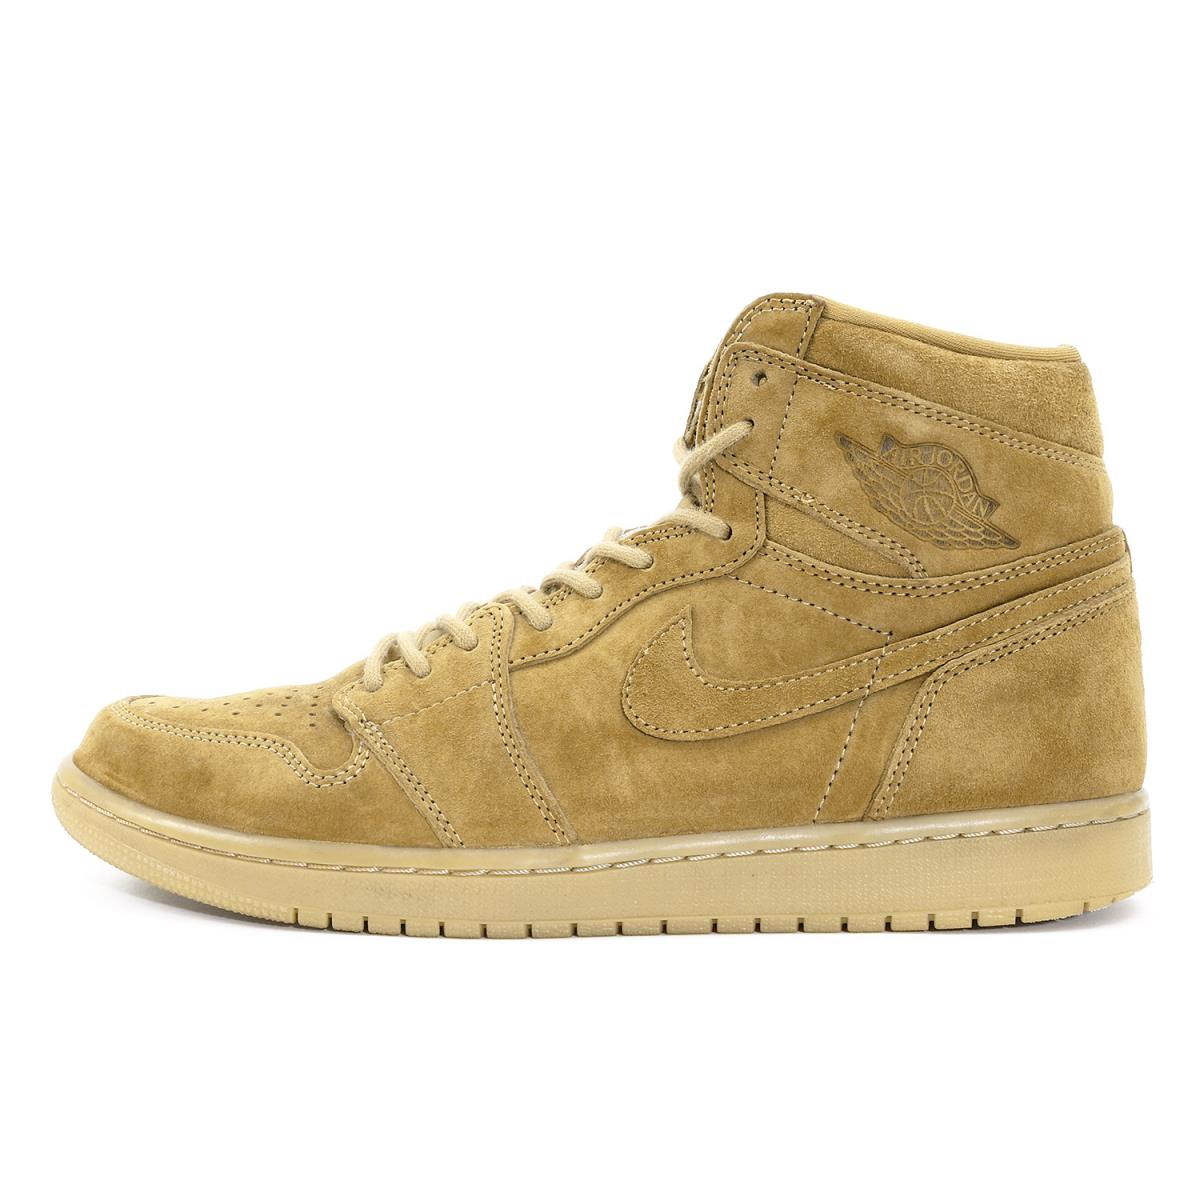 BEEGLE by Boo-Bee  NIKE (Nike) AIR JORDAN 1 RETRO HIGH OG WHEAT ... f74c73d0fa6d